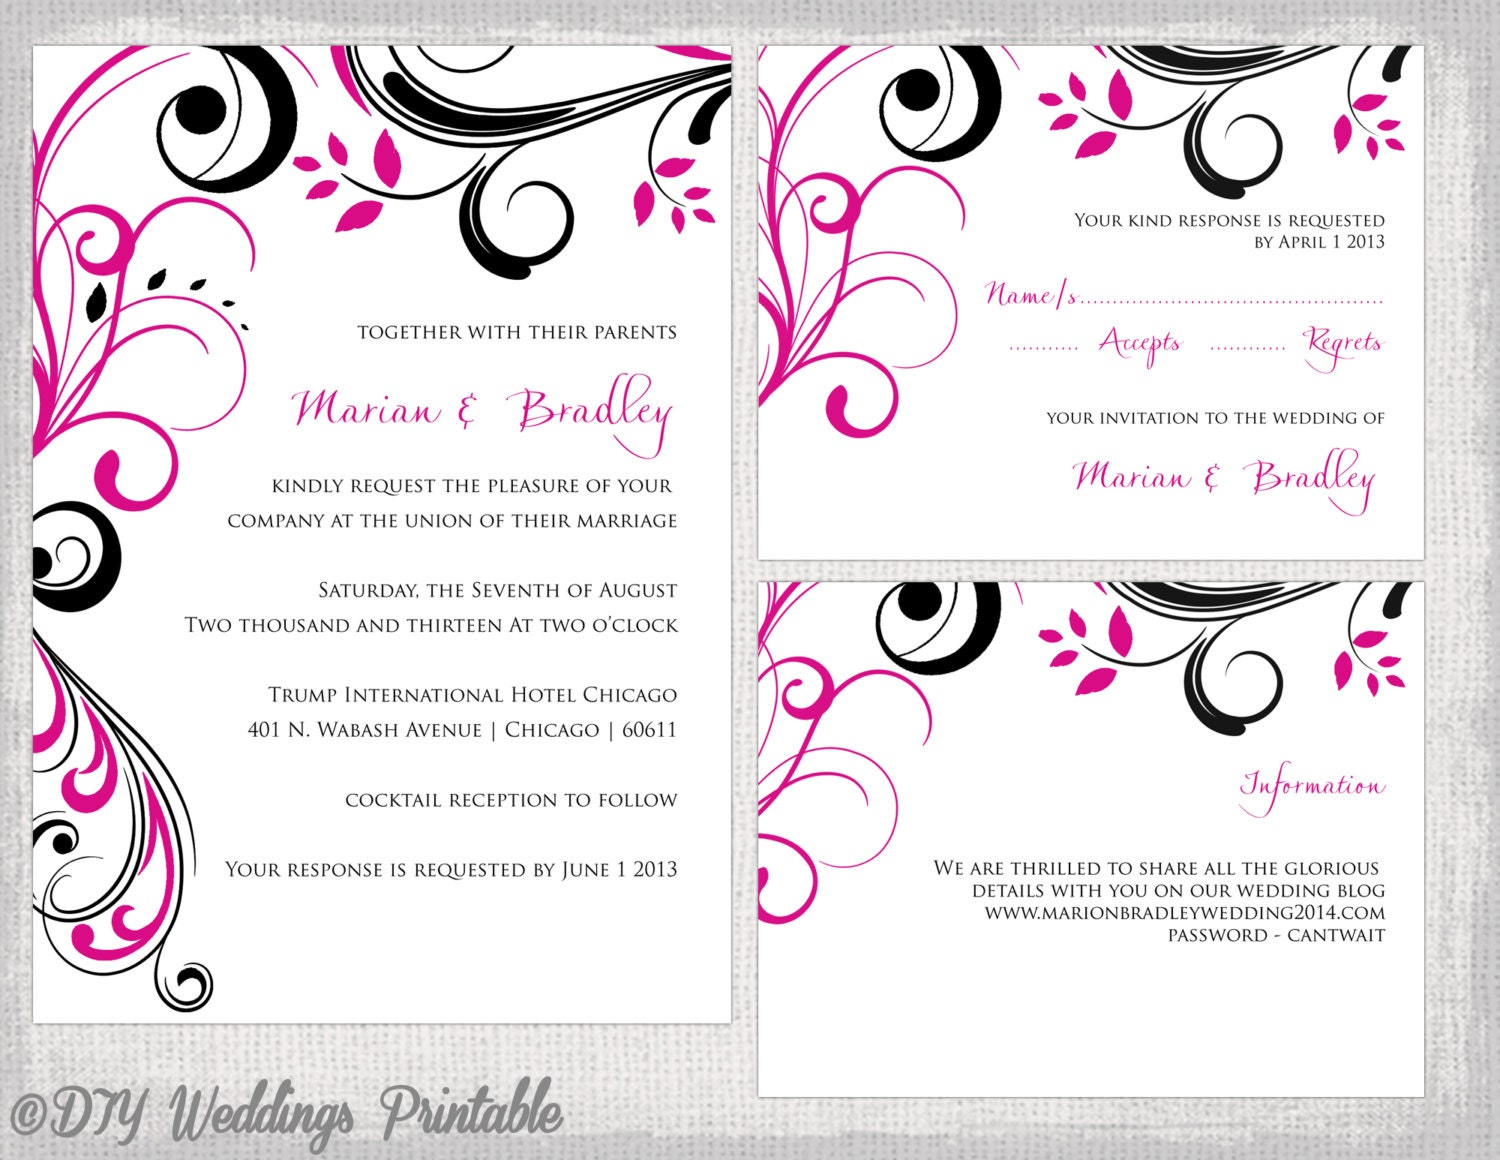 Pink Invitation Templates Pasoevolistco - Wedding invitation templates: silver wedding invitations templates